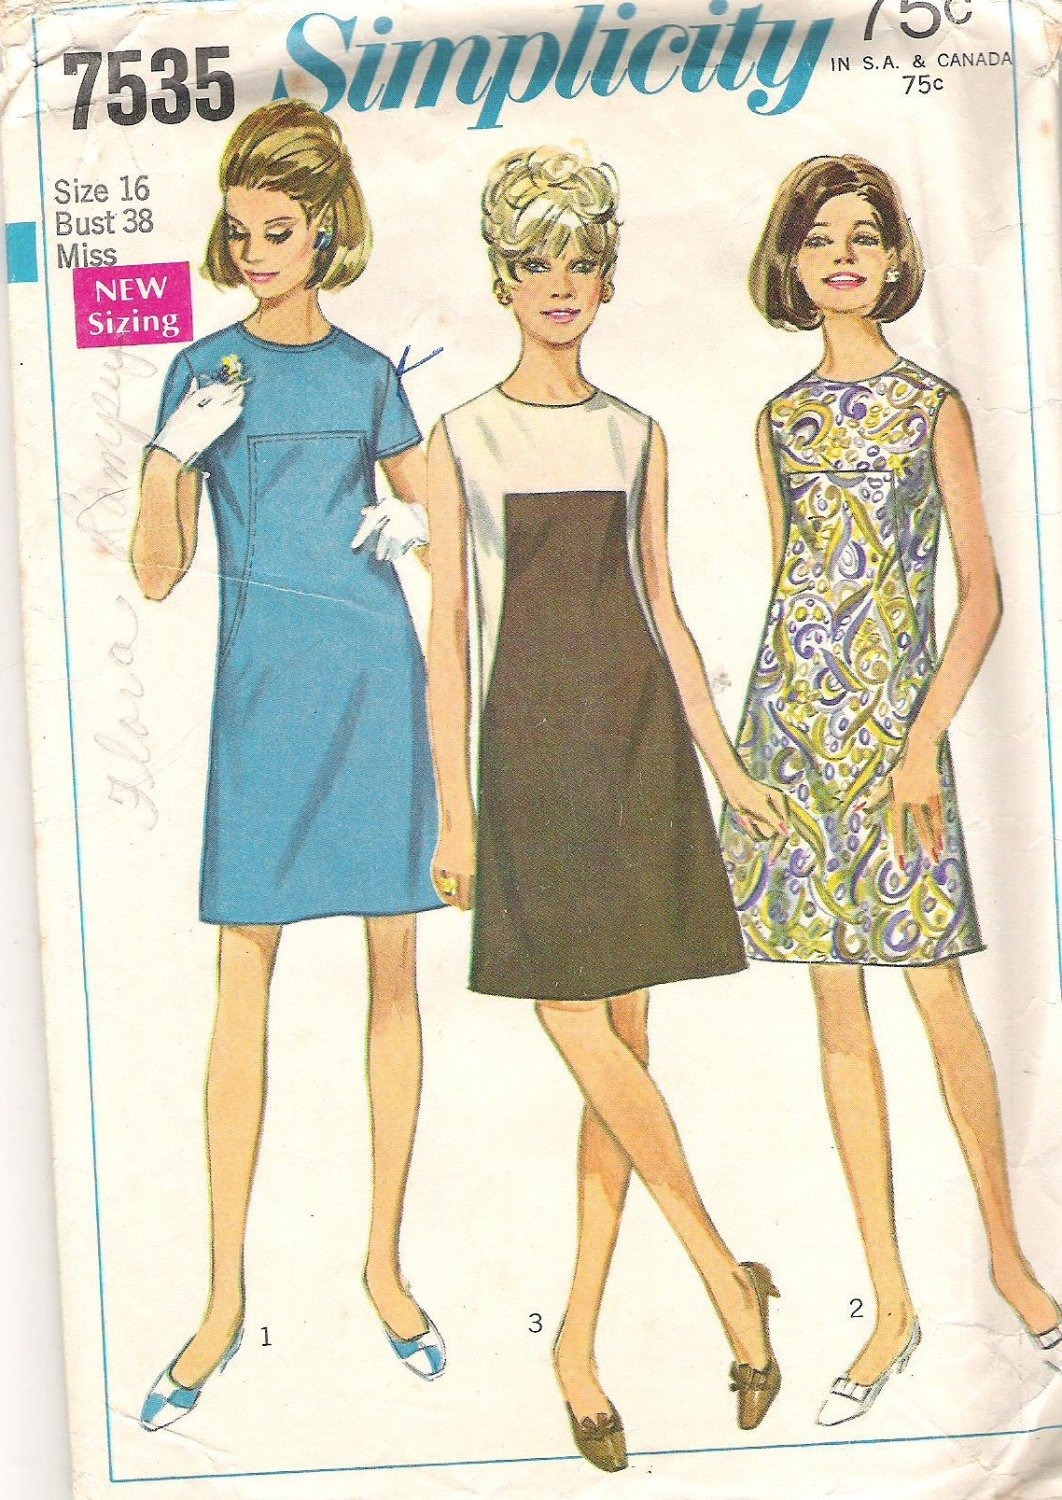 1968 Simplicity 7535 Pattern Vintage 1960s Jrs Misses A-Line Dress with Upper Contrast  Size16  Cut